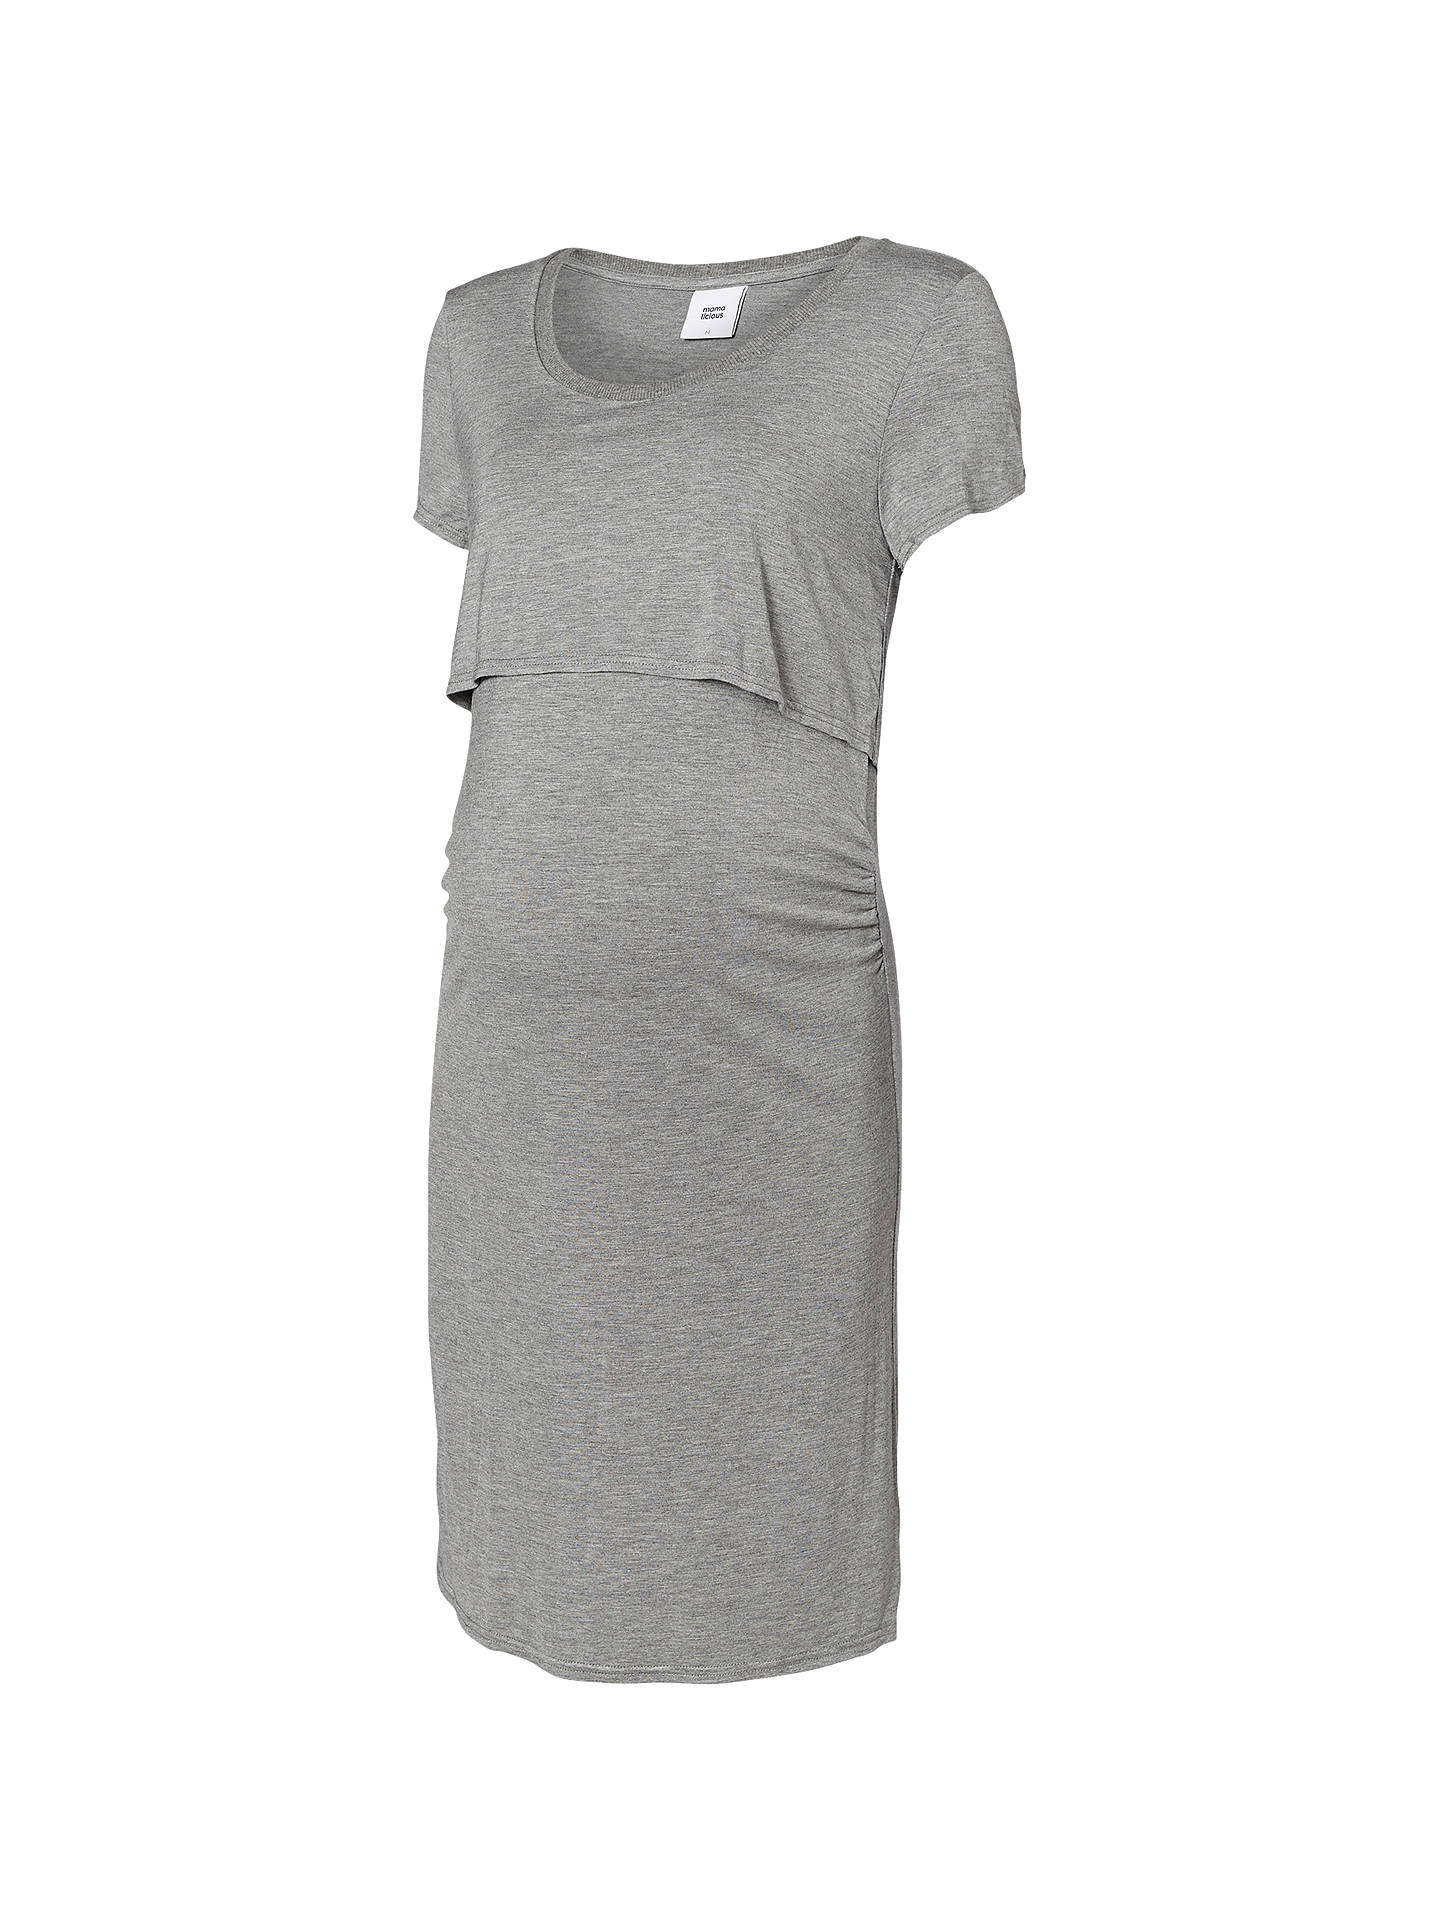 73761db9c5cdd Buy Mamalicious Cage Short Sleeve Jersey Maternity Dress, Grey, S Online at  johnlewis.